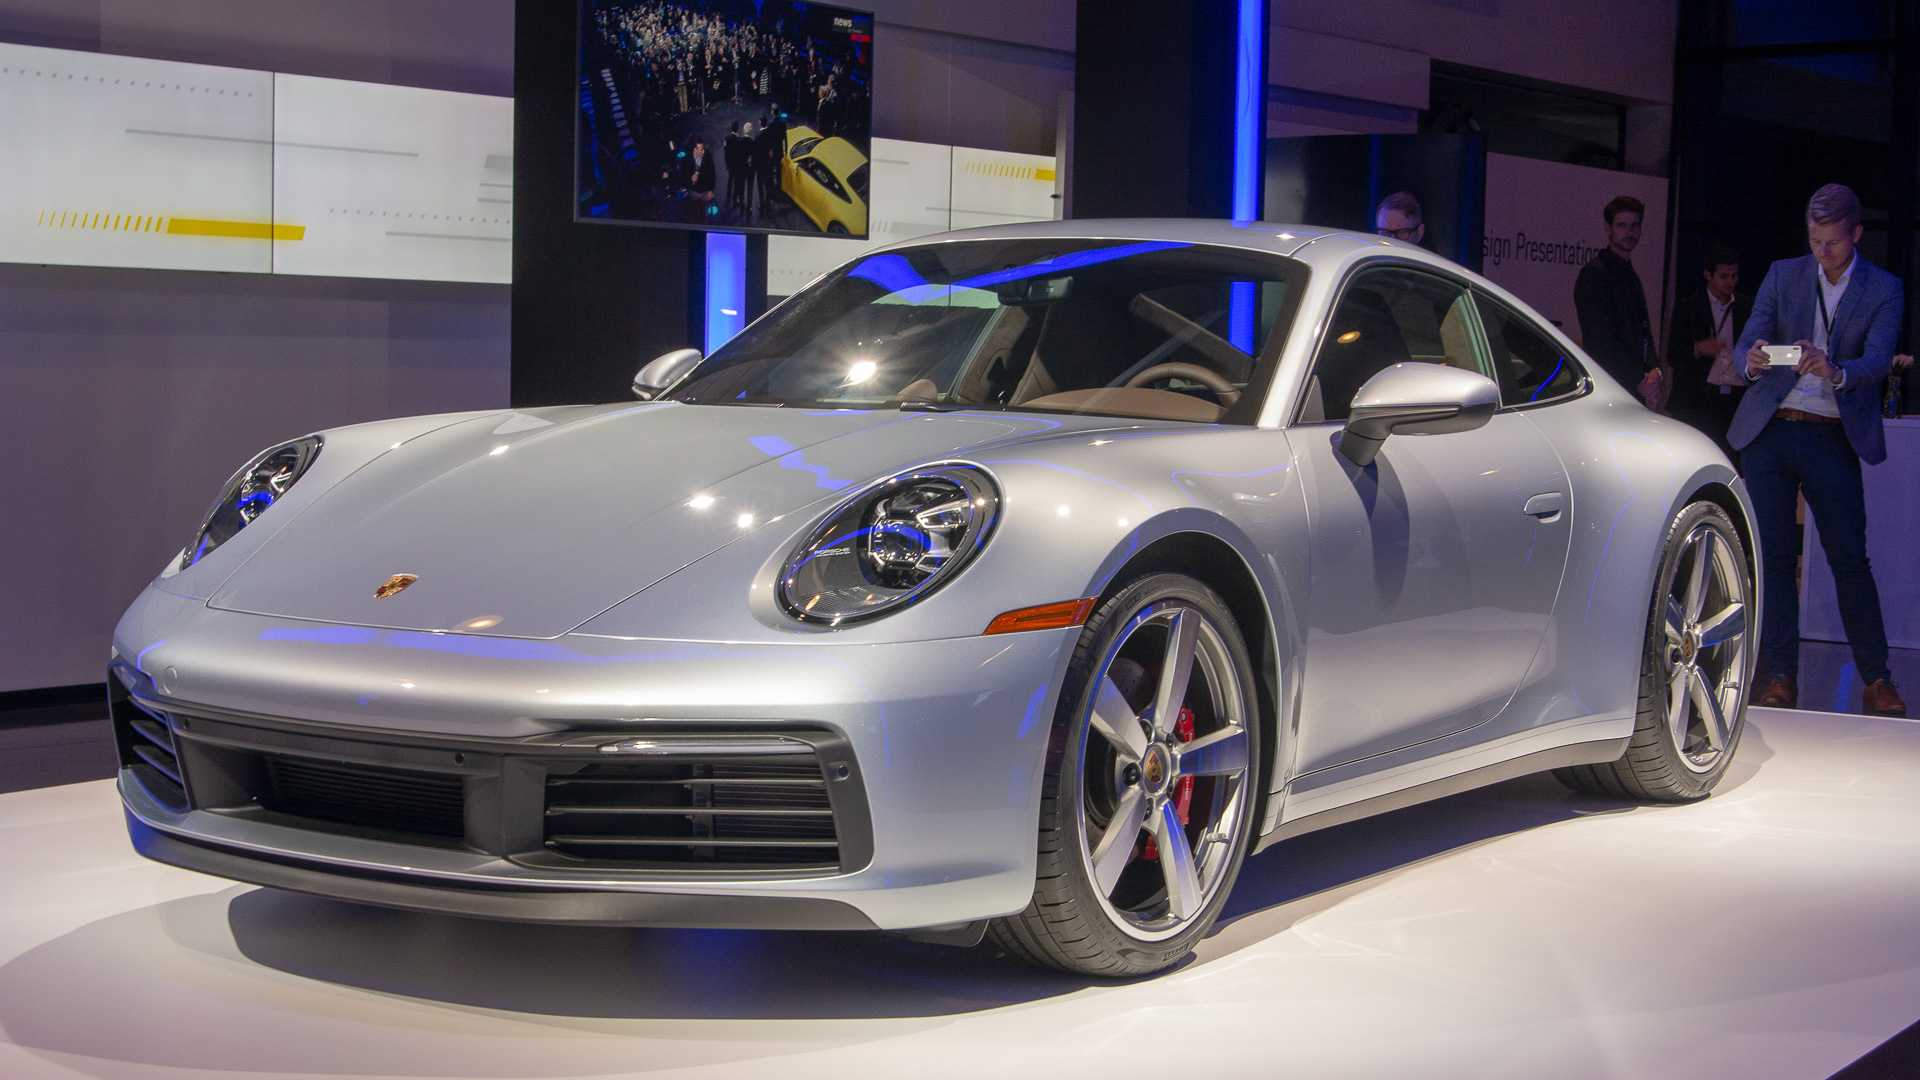 87 Concept of 2020 Porsche Specs and Review for 2020 Porsche